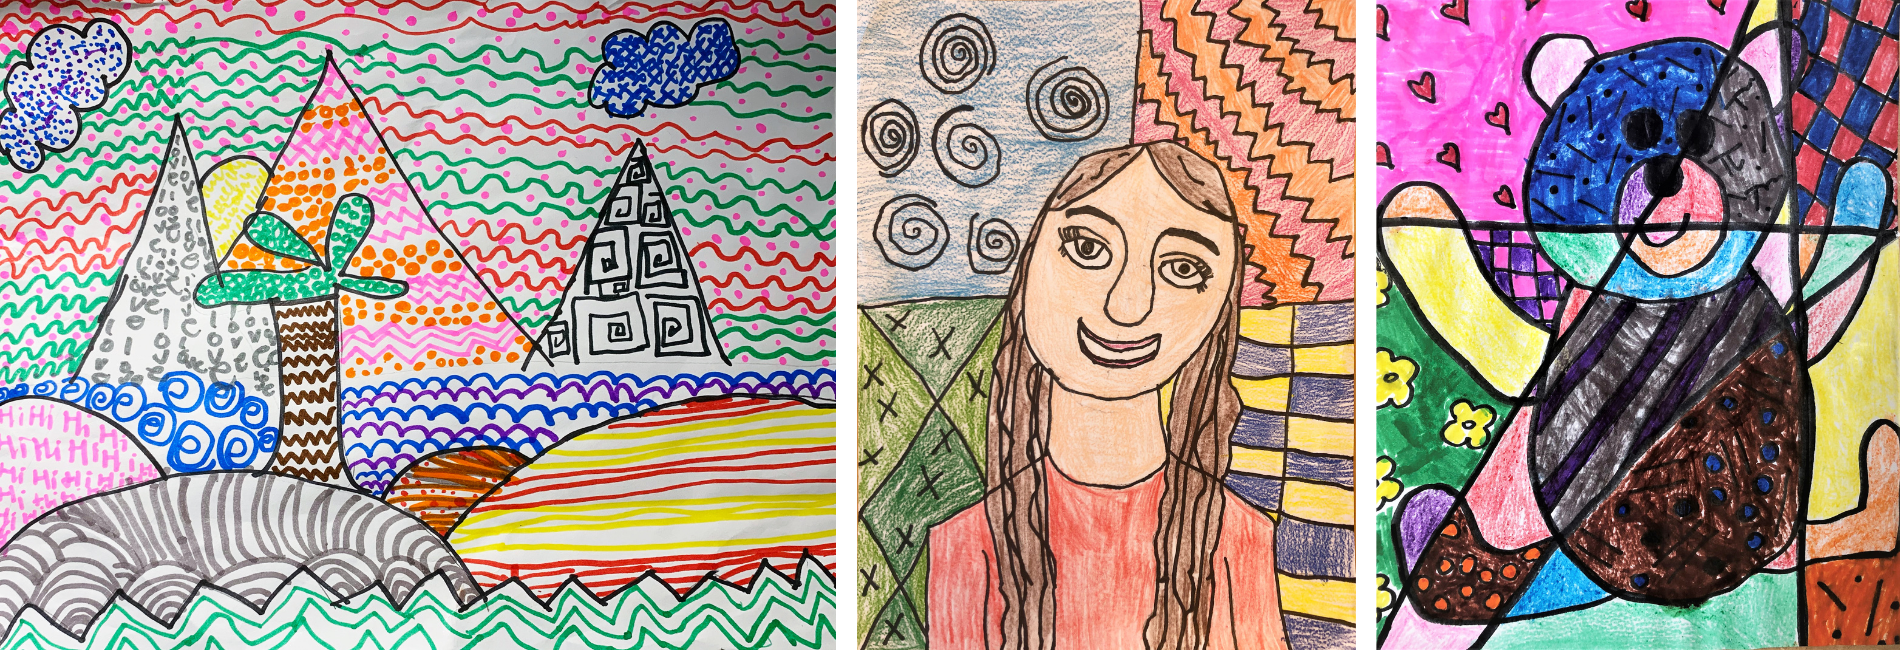 Masterpieces by primary student artists